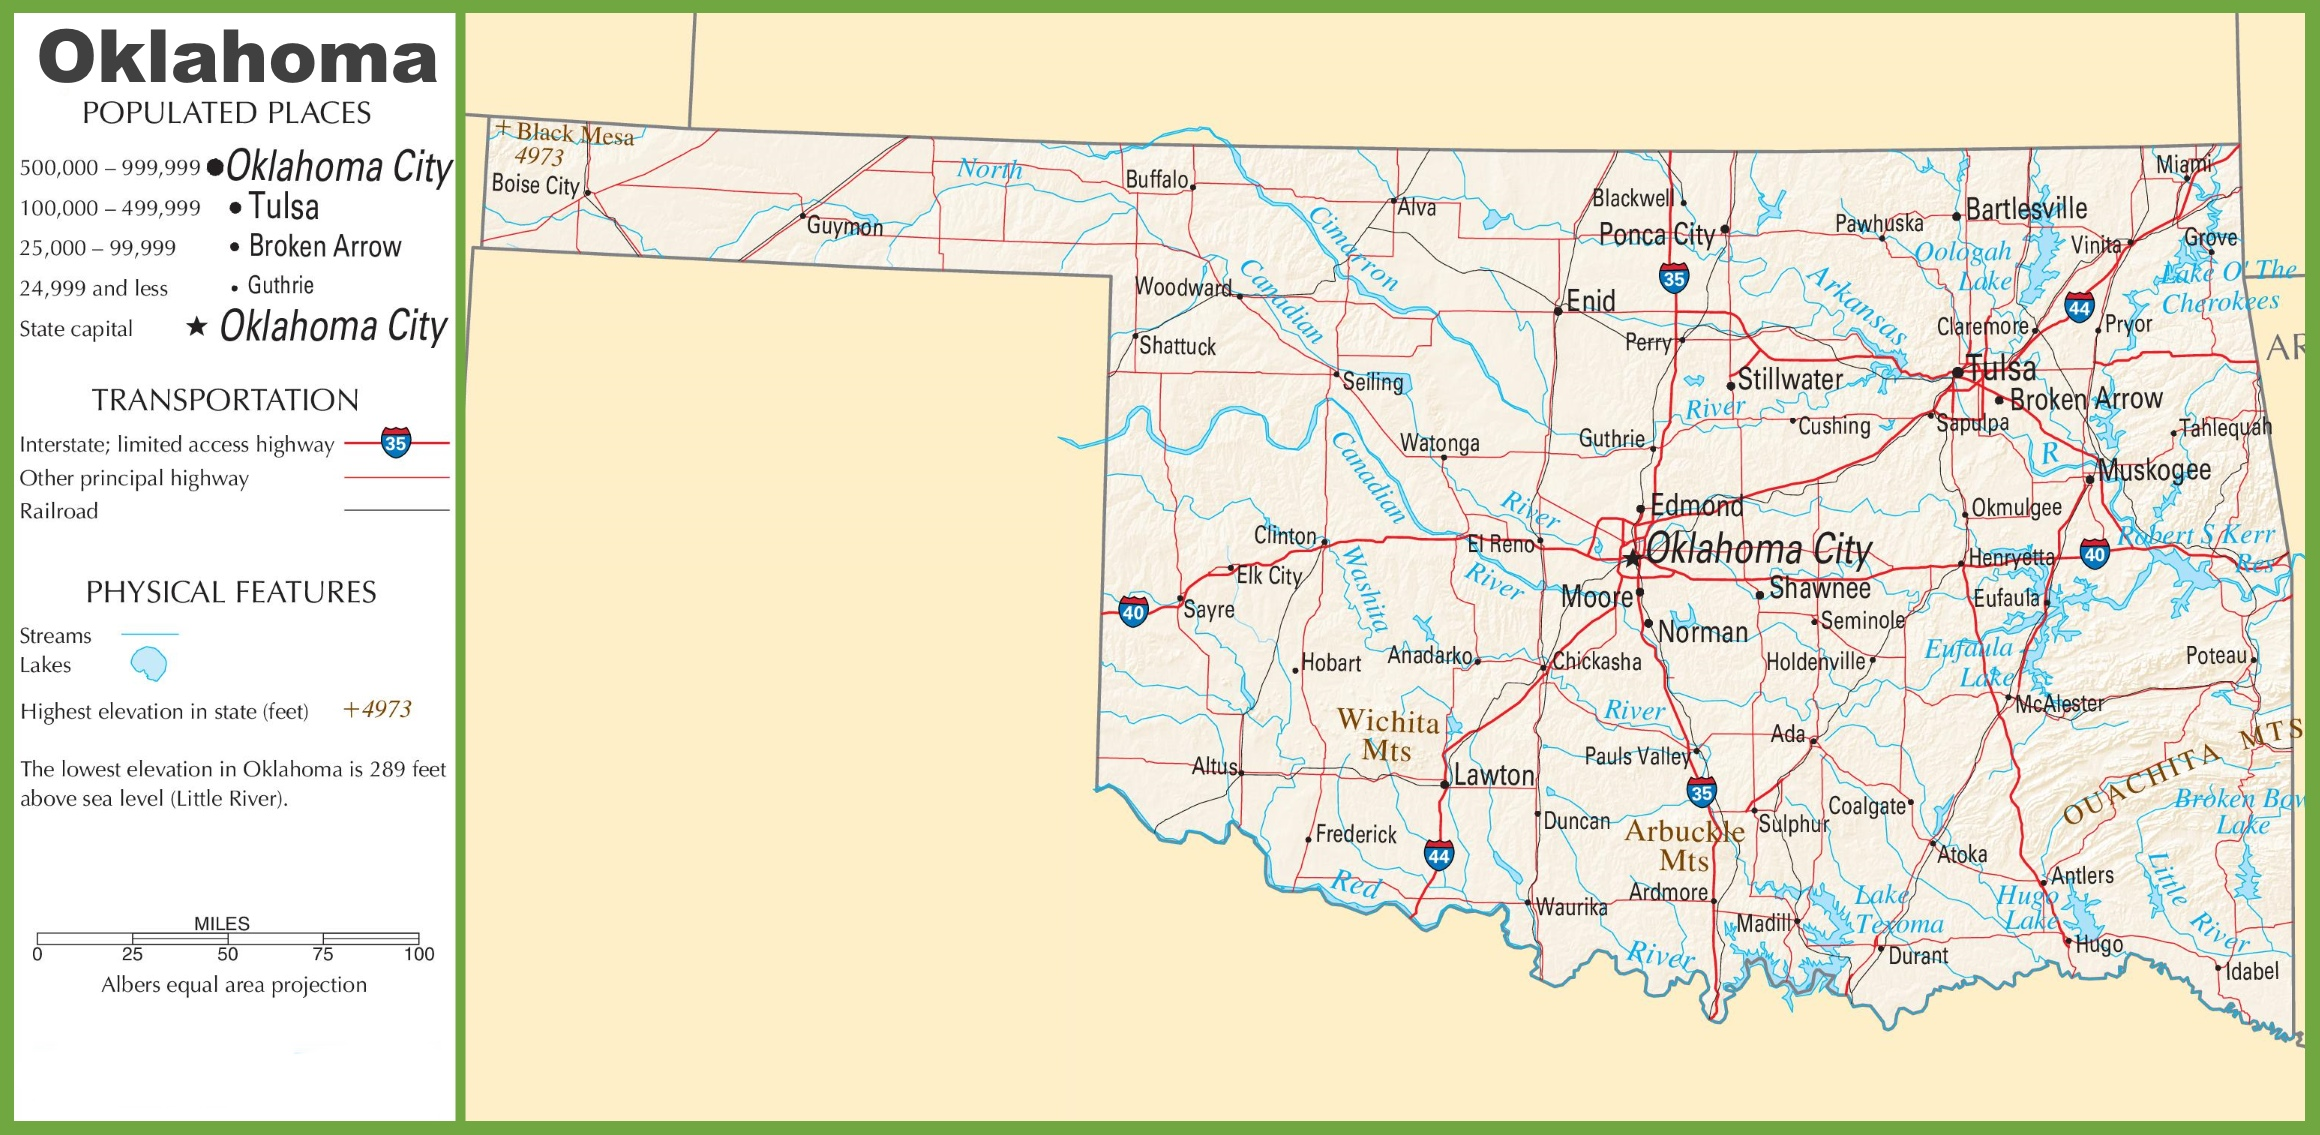 Oklahoma Highway Map - Oklahoma highways map